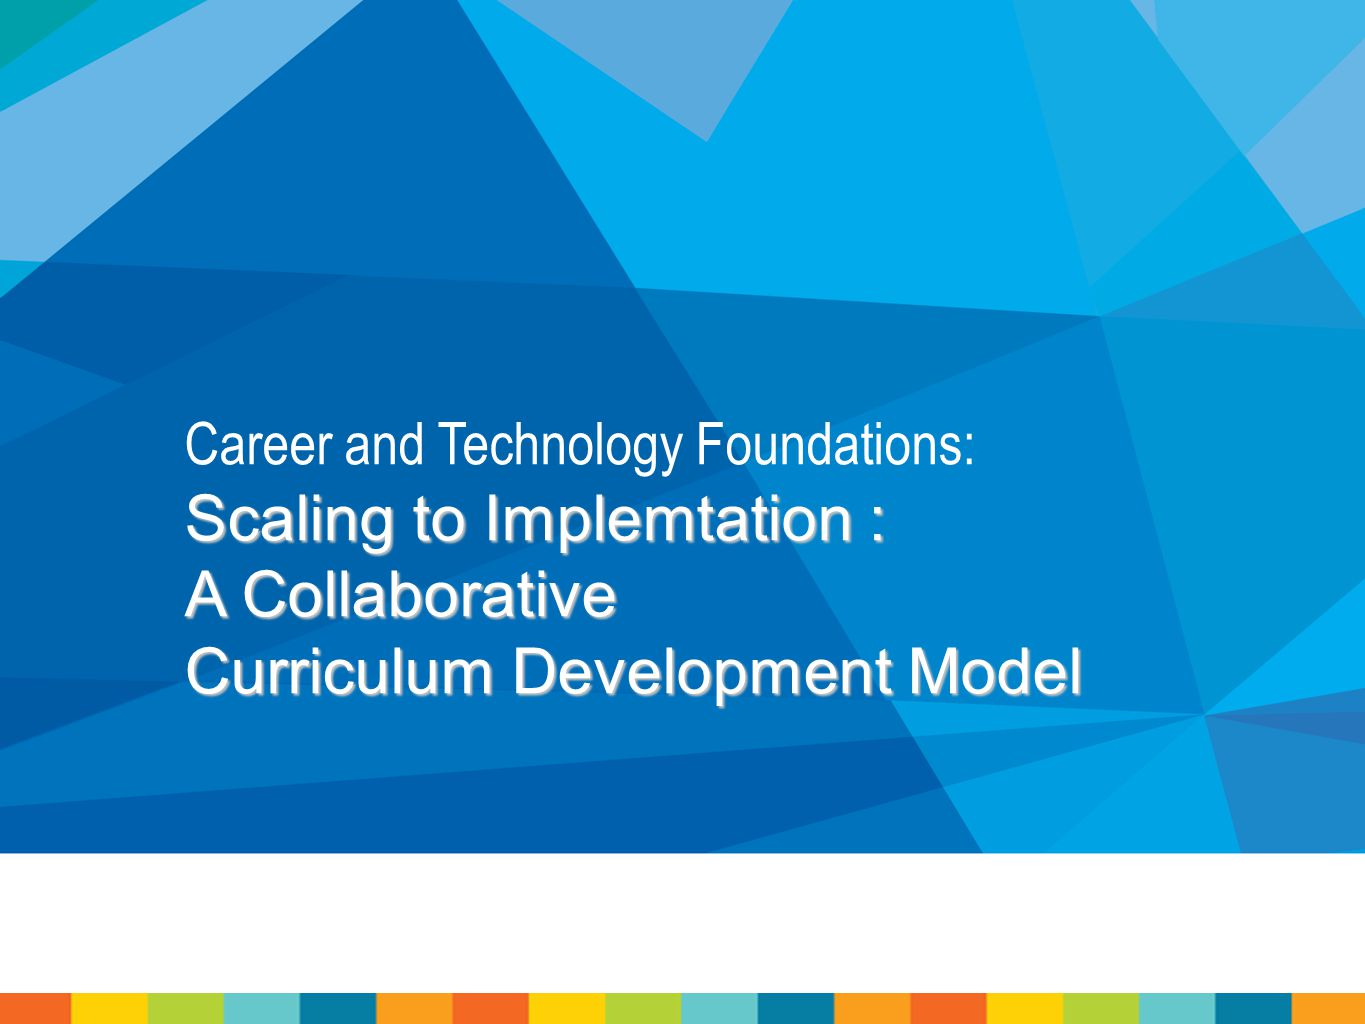 Career and Technology Foundations: Scaling to Implemtation : A Collaborative Curriculum Development Model